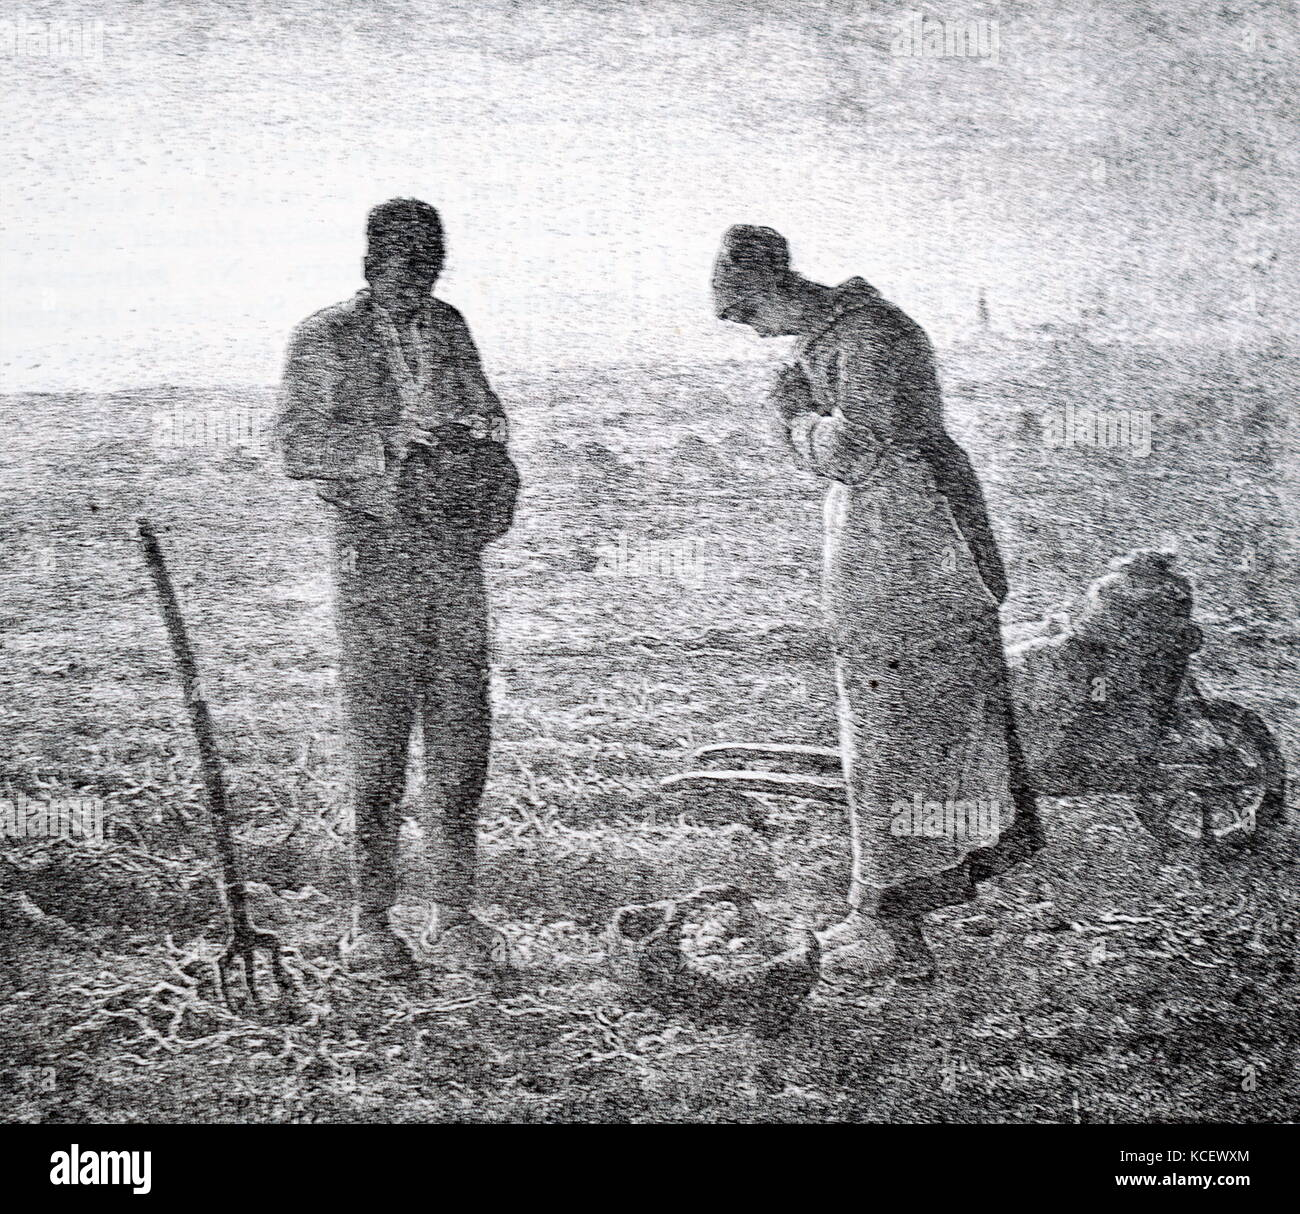 Print of the painting titled 'The Angelus' by Jean-François Millet (1814-1875) a French painter and - Stock Image